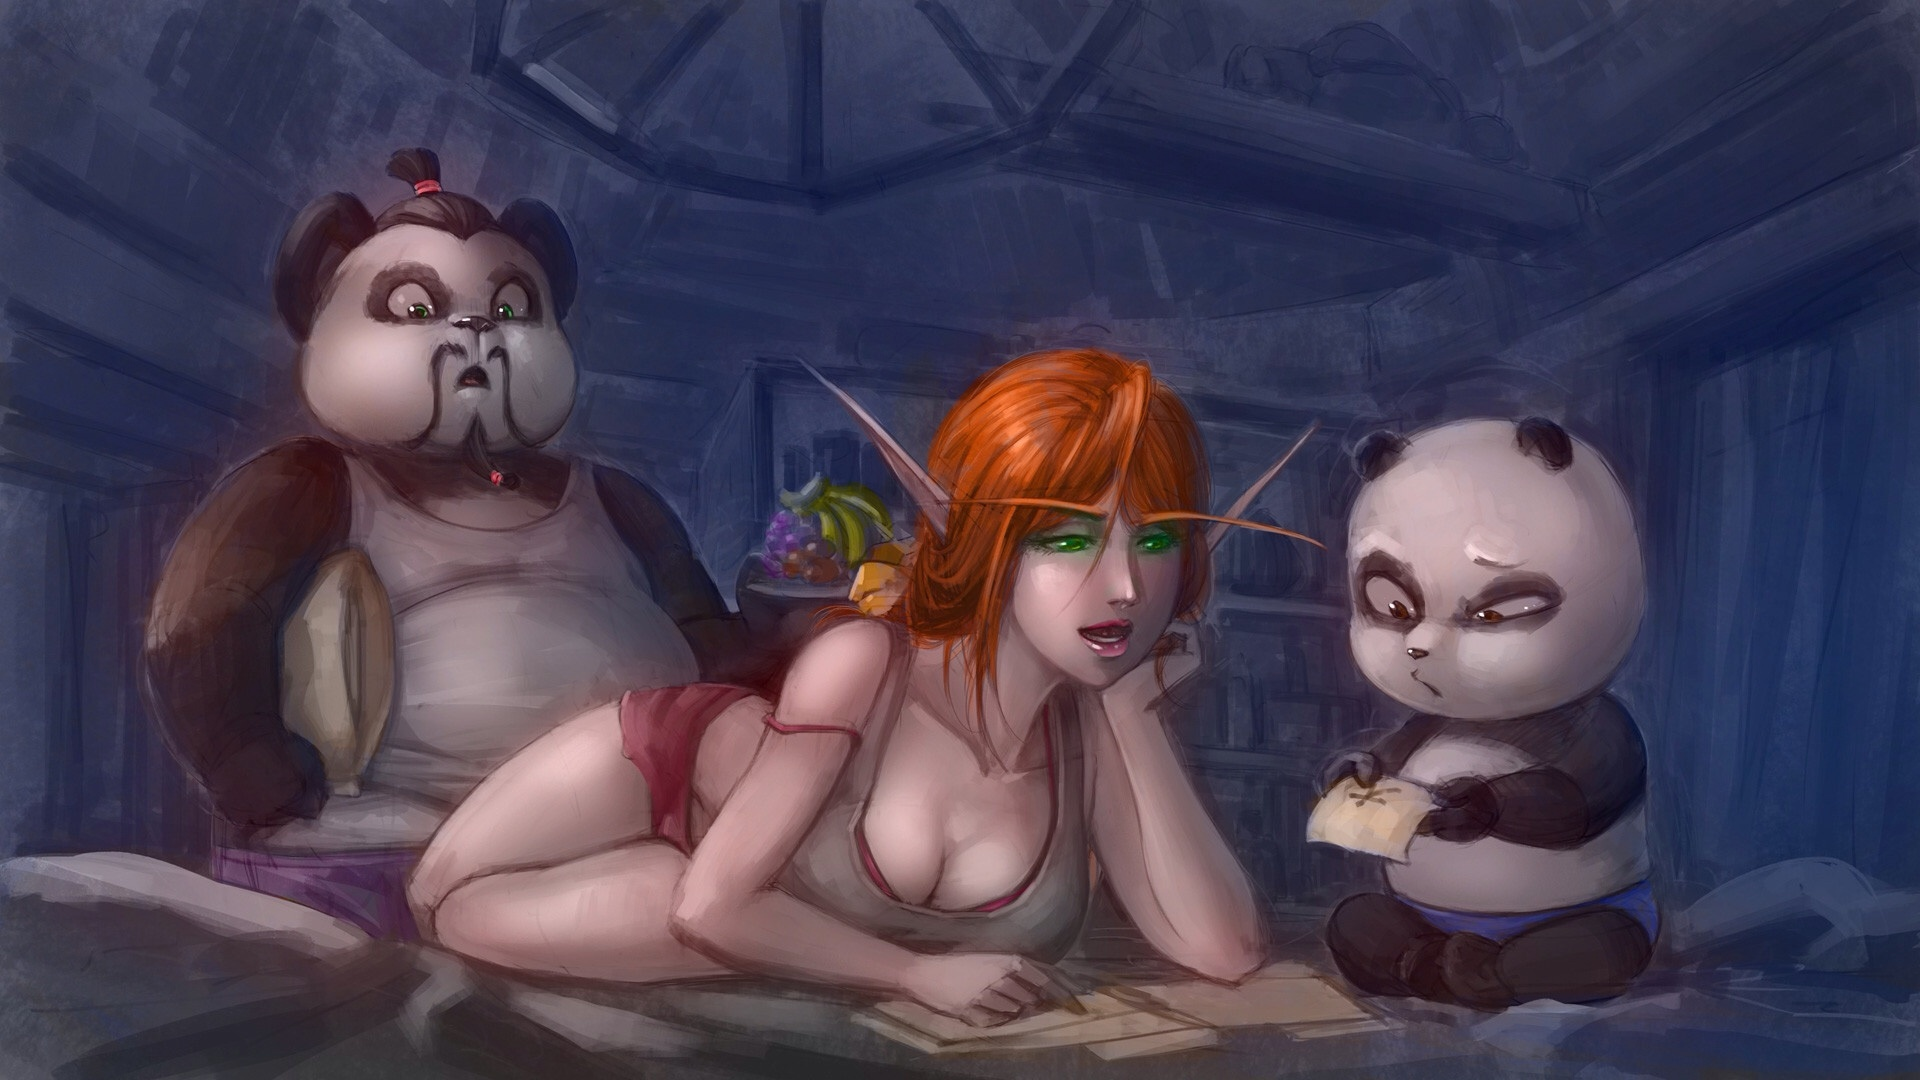 World of warcraft undead animated porn sex pics